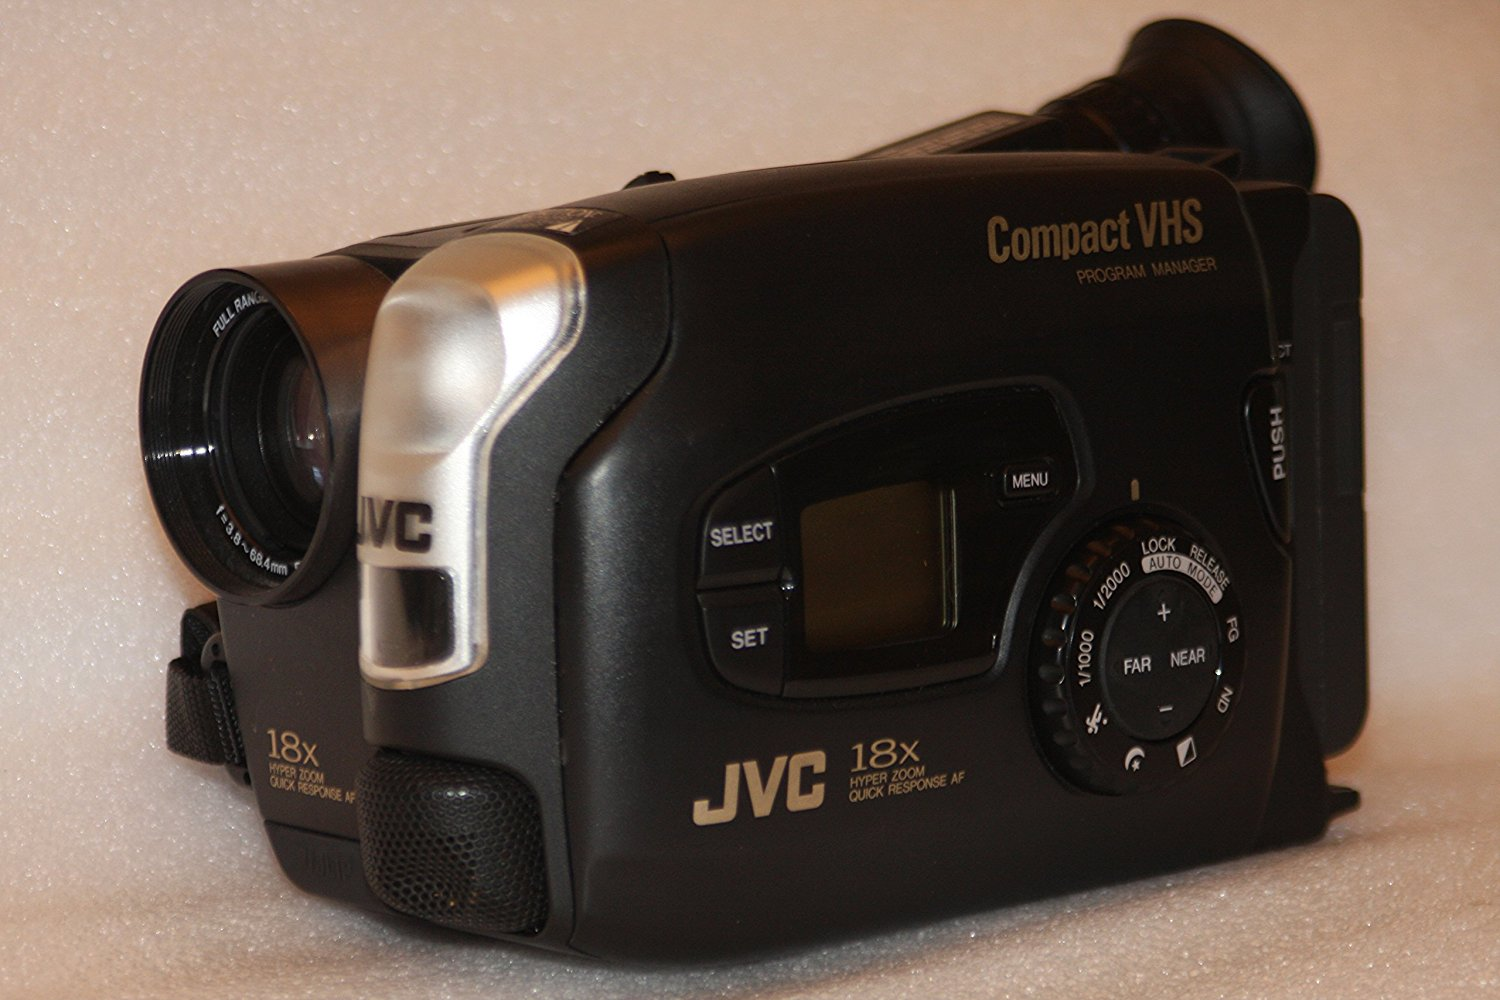 Buy Jvc Gr Ax720 Compact Vhs Camcorder With 18x Hyper Zoom And Color Viewfinder In Cheap Price On Alibaba Com